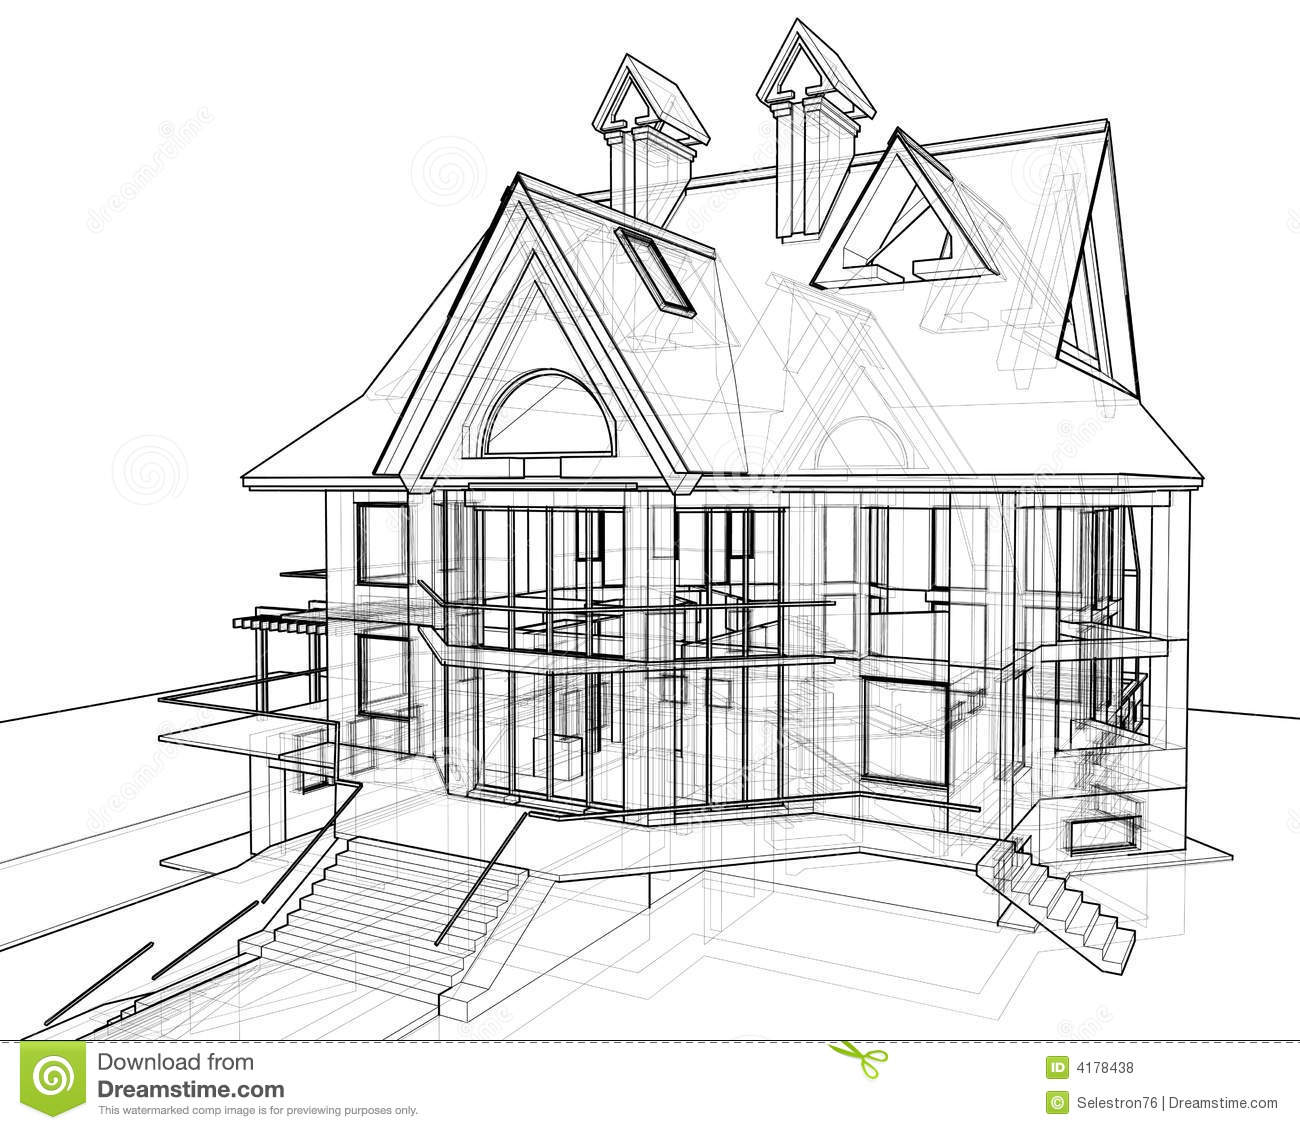 House Technical Draw Royalty Free Stock Photos Image 4178438: 3d house drawing